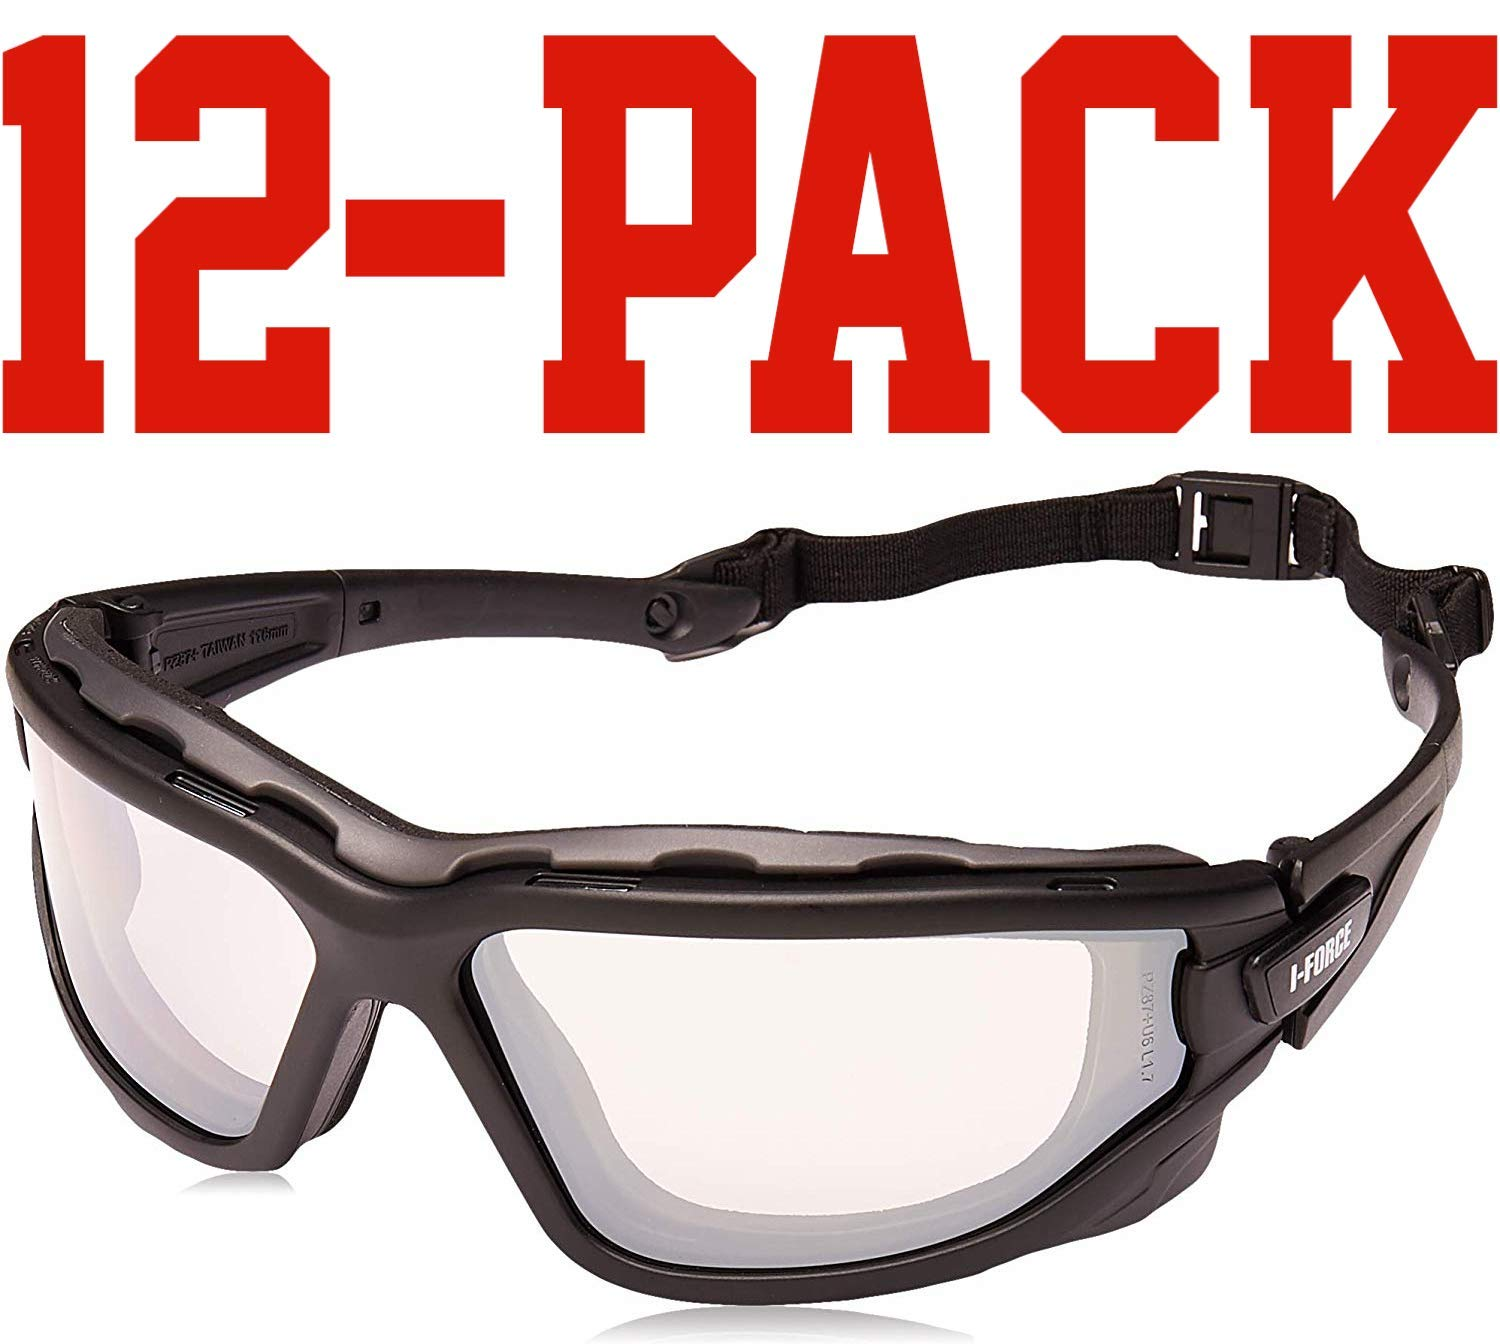 (12 Pair) Pyramex I-Force Glasses Black Strap-Temples/Indoor-Outdoor Mirror Anti-Fog Lens (SB7080SDT) by Pyramex Safety